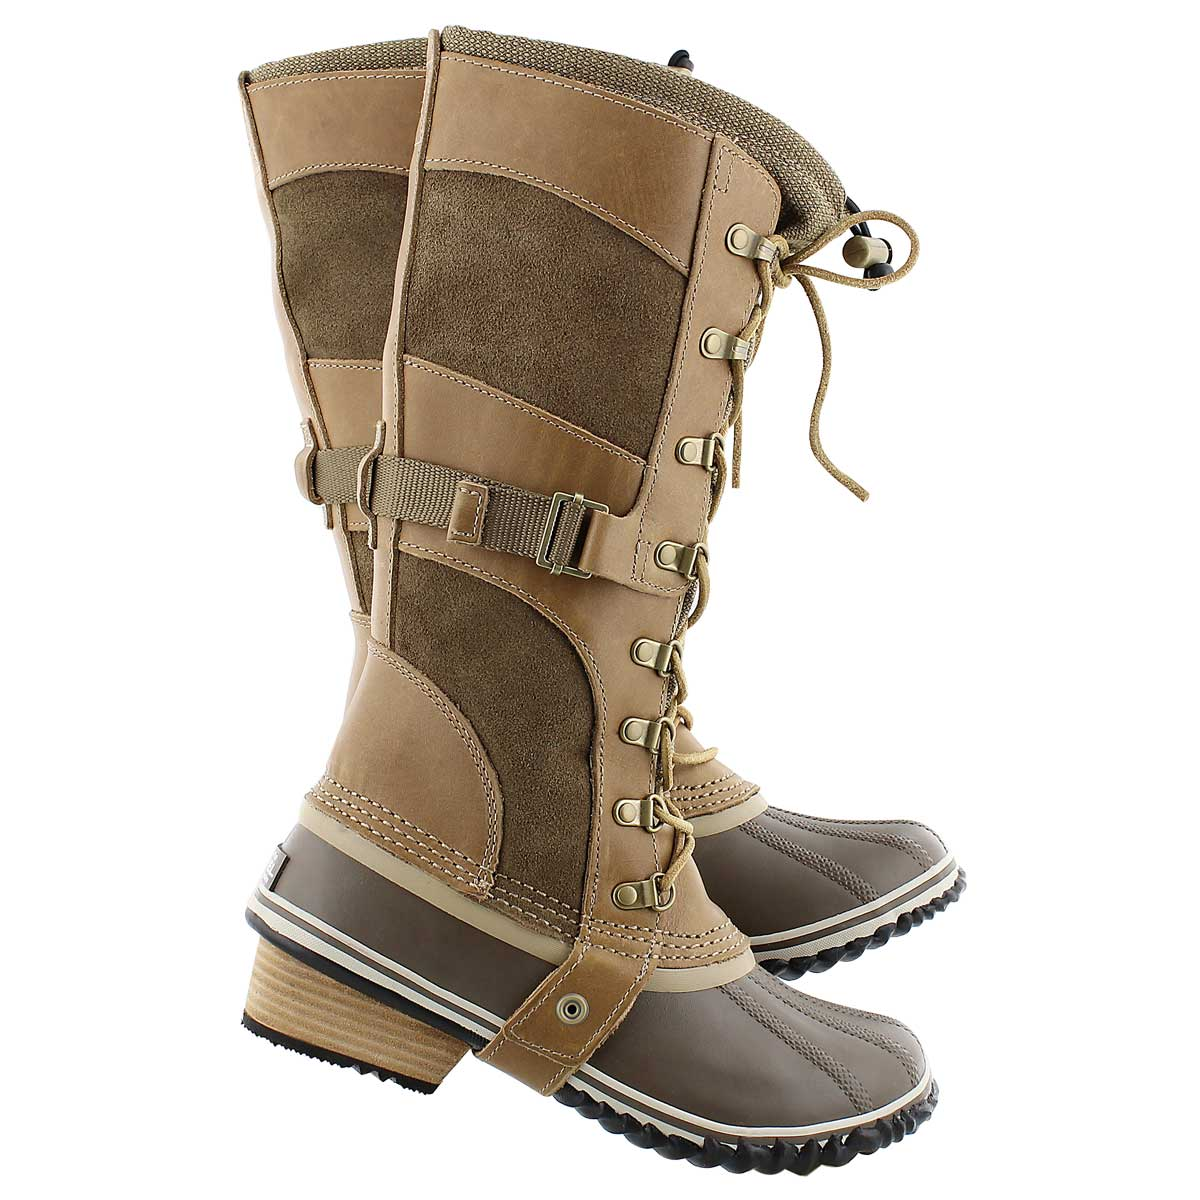 Lds Conquest Carly brit tan winter boot